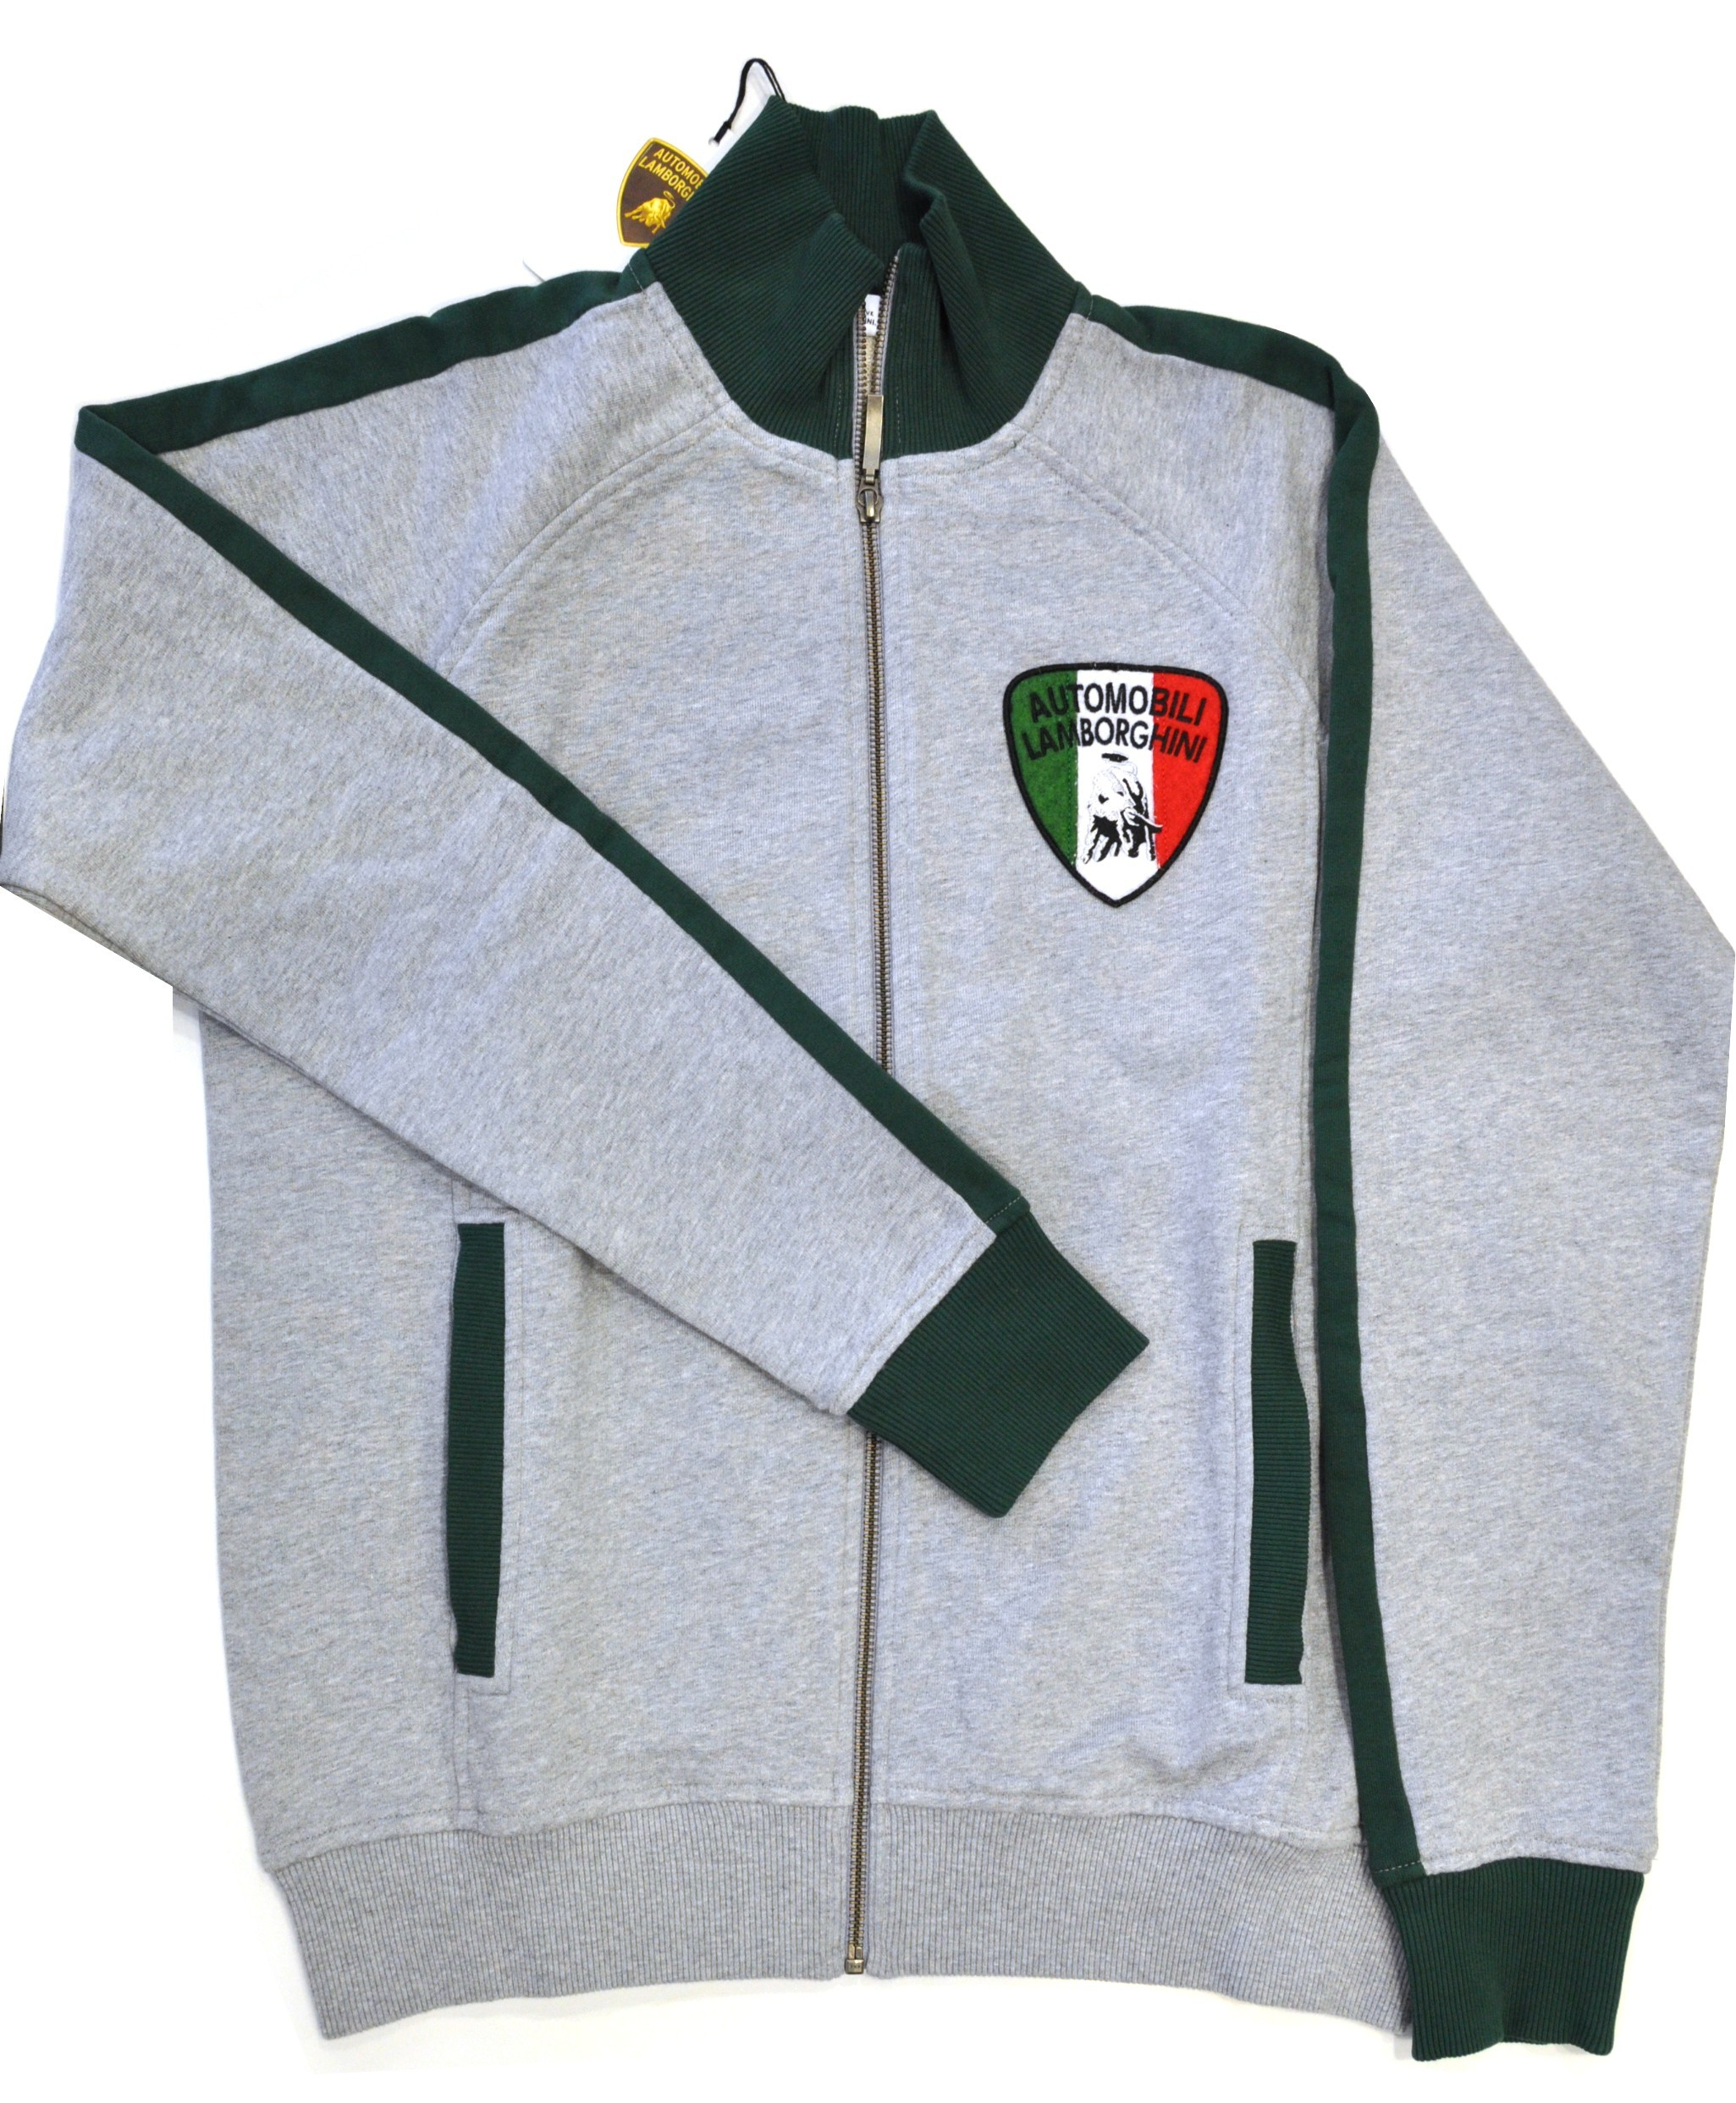 Lamborghini Men Contrast Sleeve Zip Up Sweatshirt Grey/Green